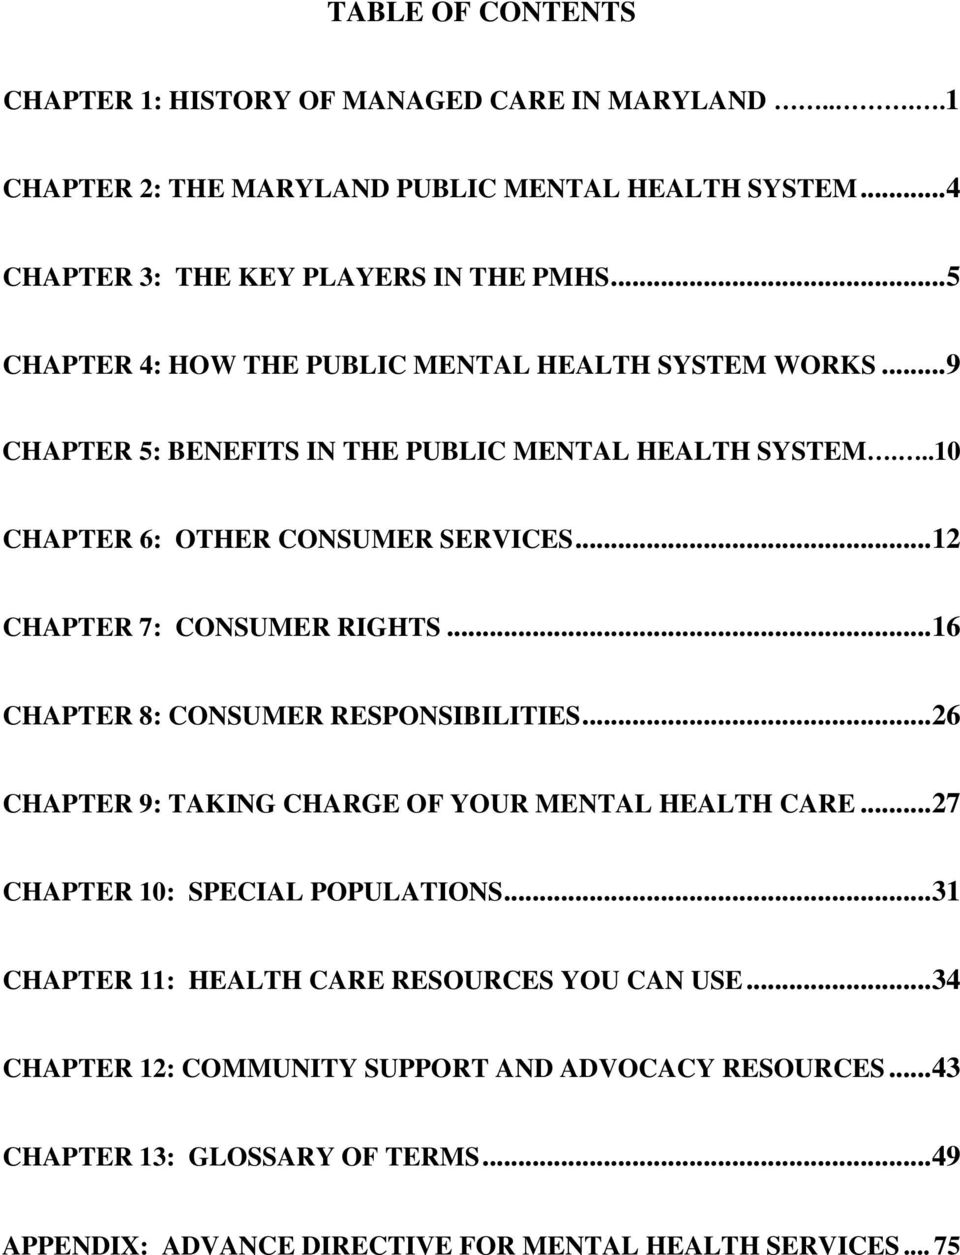 ..12 CHAPTER 7: CONSUMER RIGHTS...16 CHAPTER 8: CONSUMER RESPONSIBILITIES...26 CHAPTER 9: TAKING CHARGE OF YOUR MENTAL HEALTH CARE...27 CHAPTER 10: SPECIAL POPULATIONS.